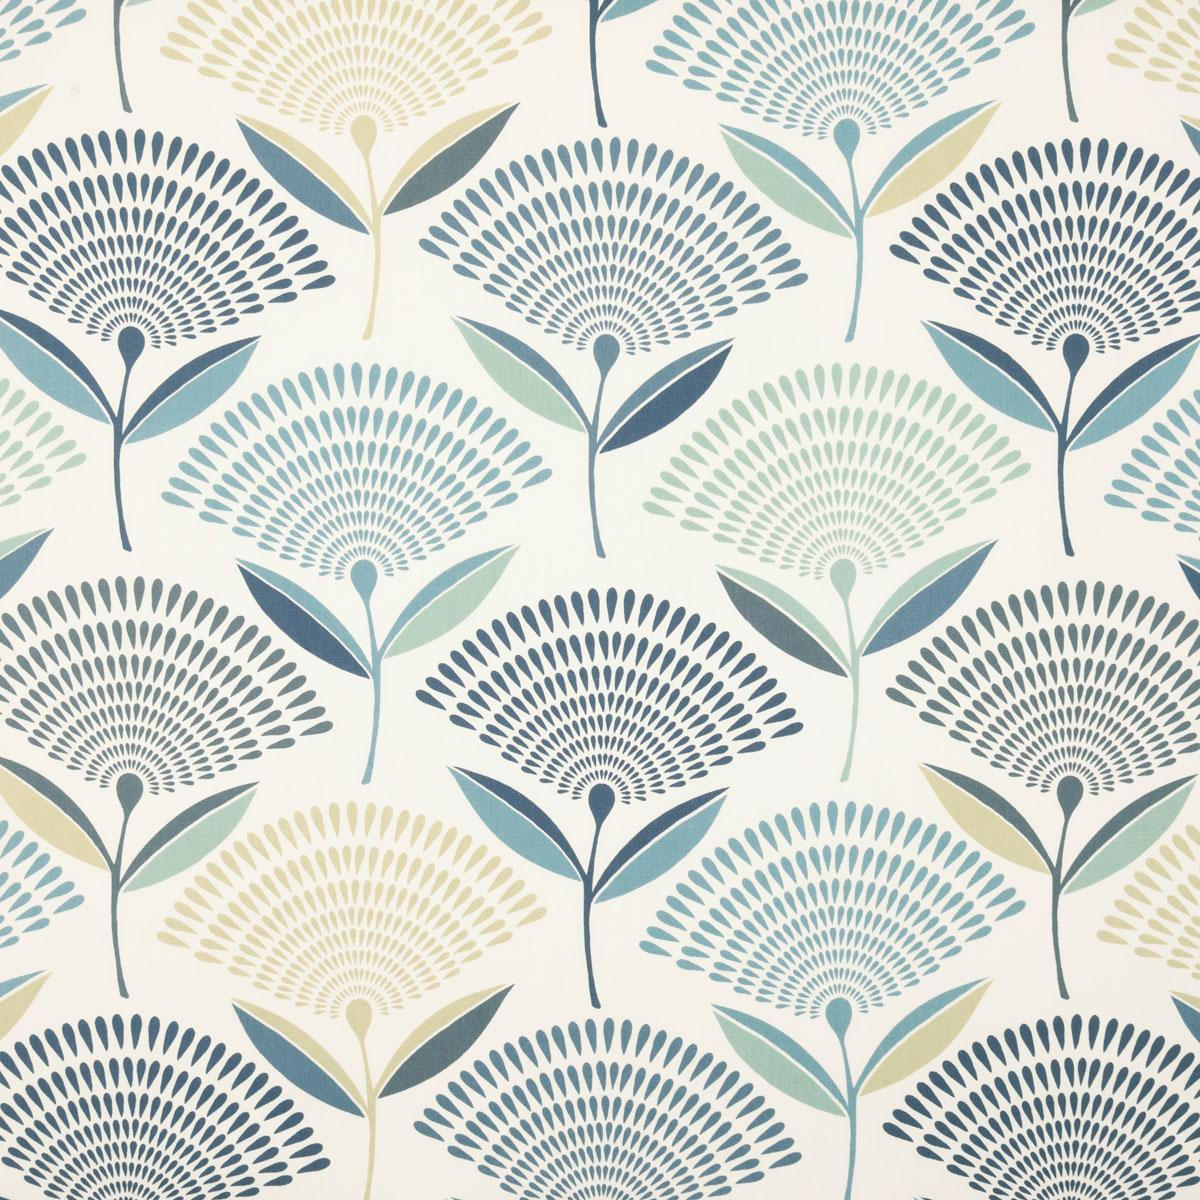 Stockists of Colonial Dandelion Curtain Fabric